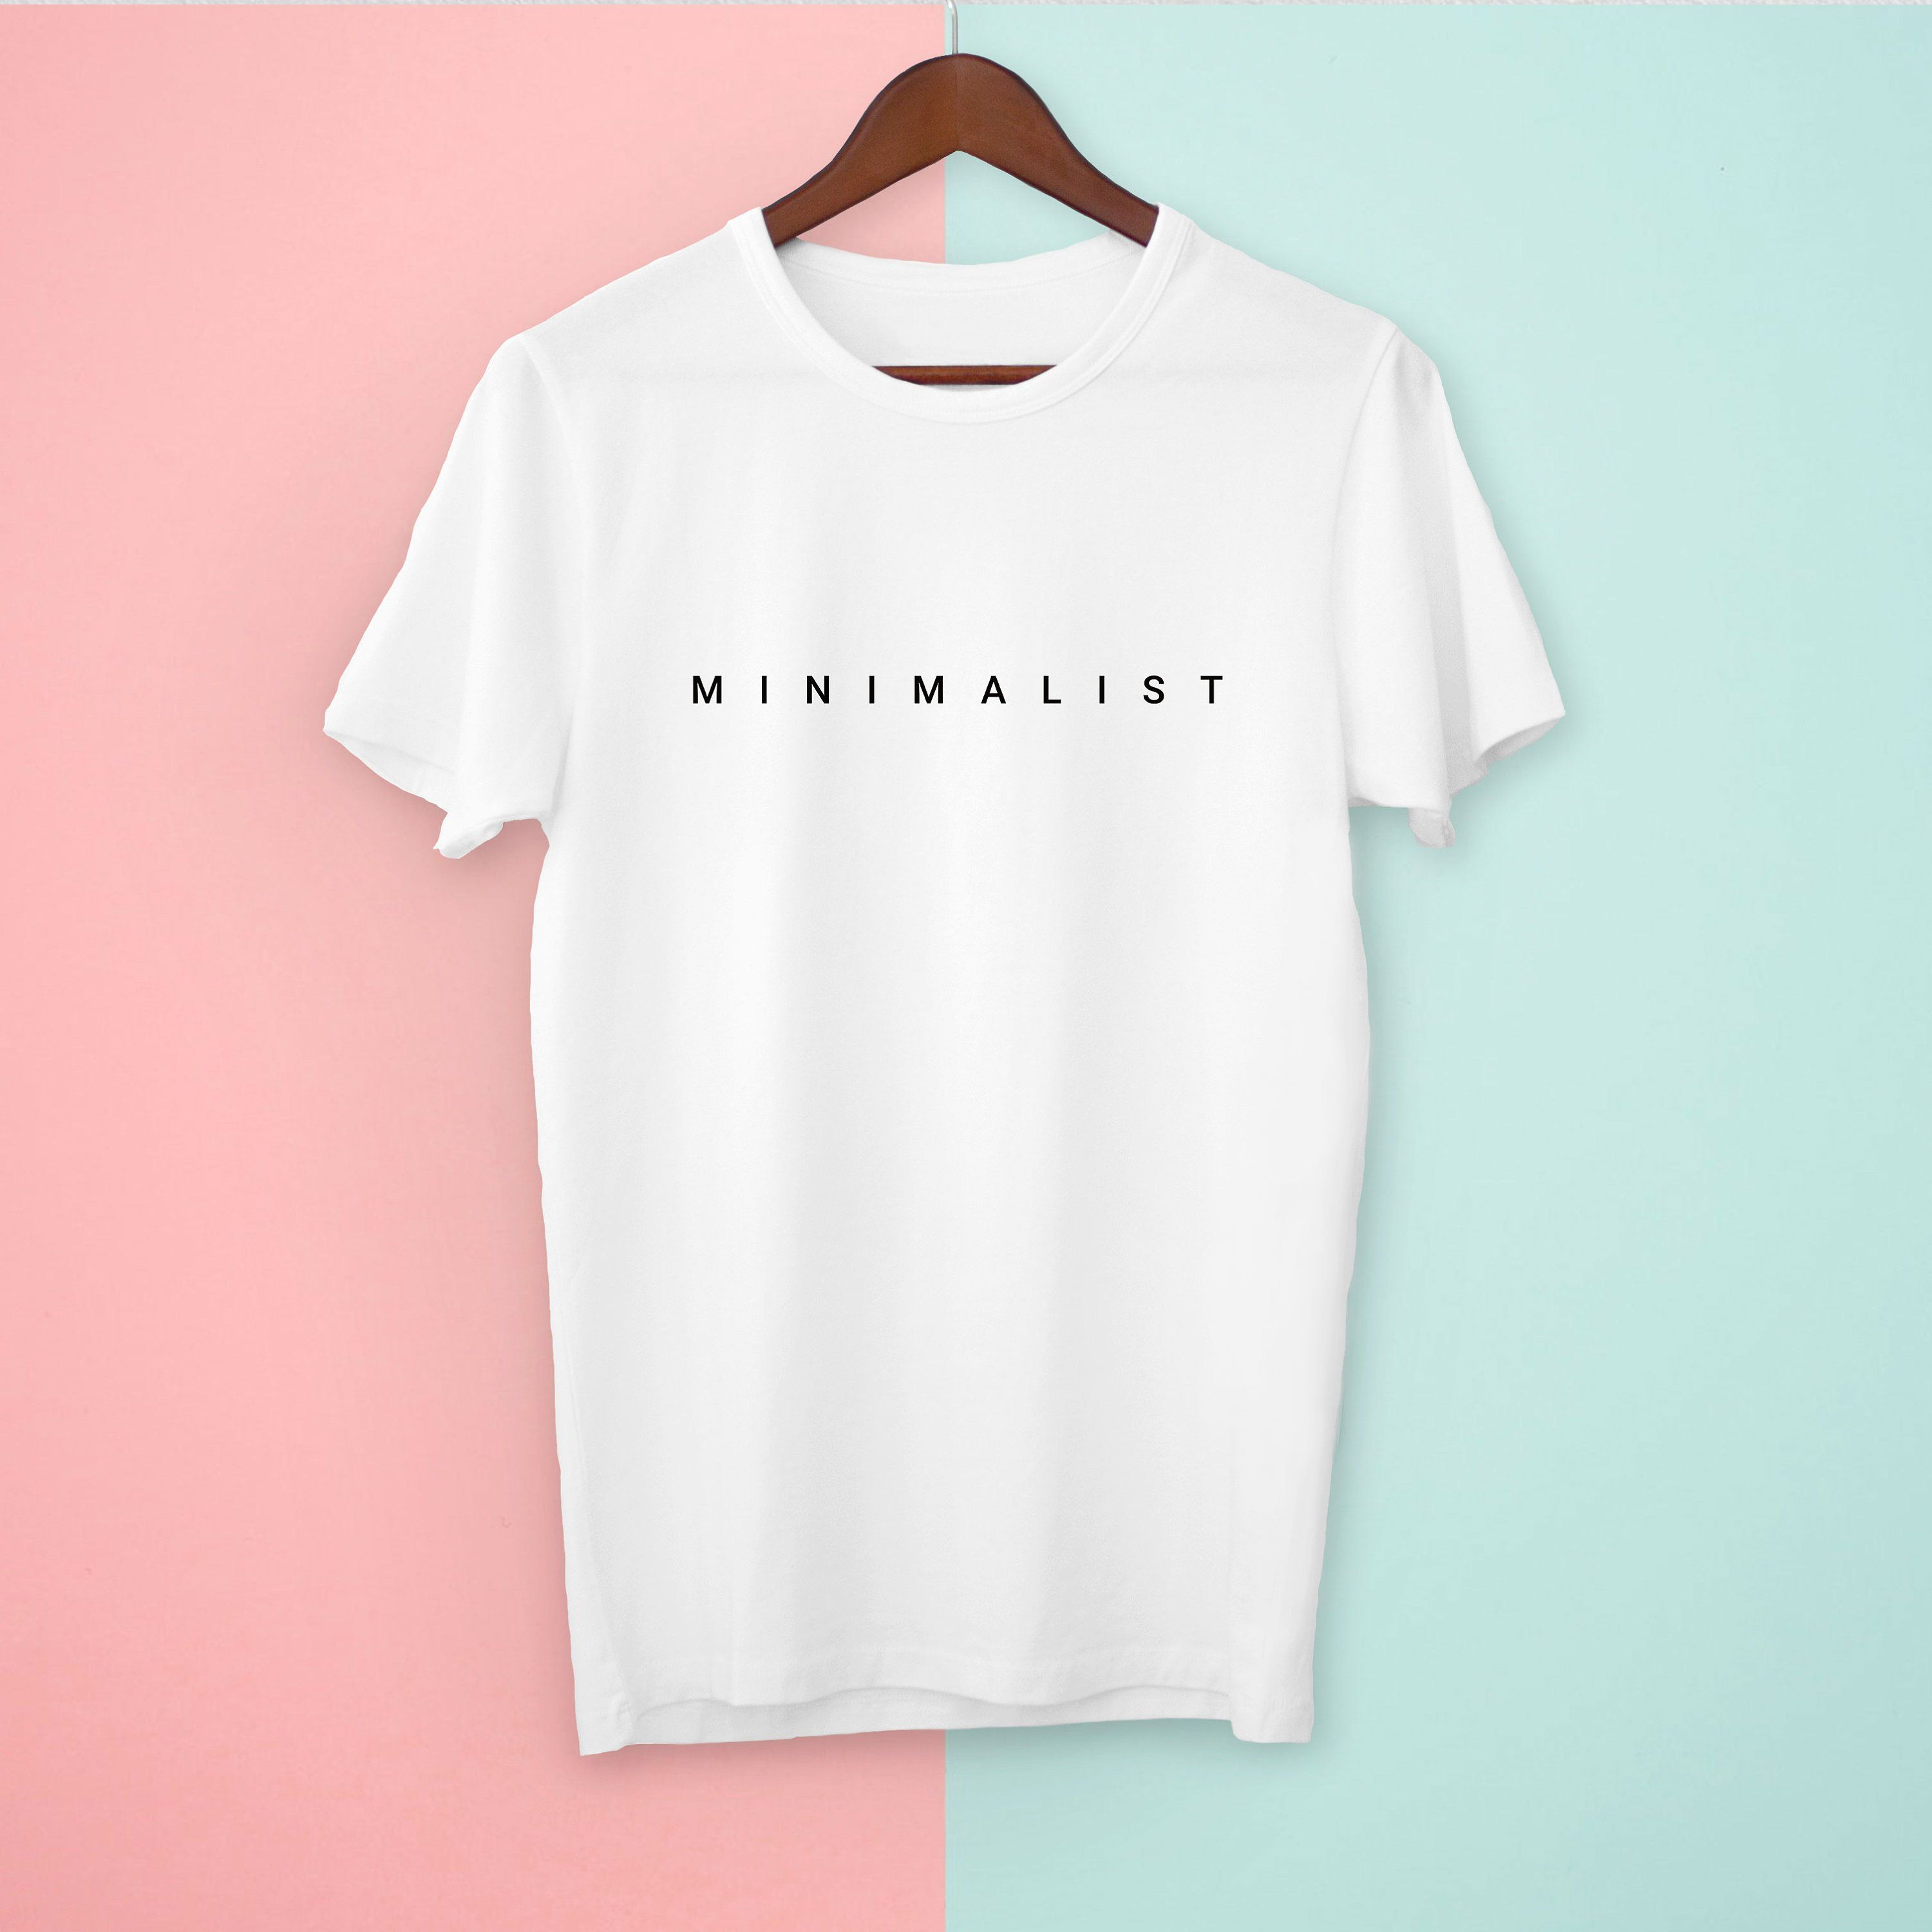 Minimal T Shirt For Minimalists Join The Movement And Simplify